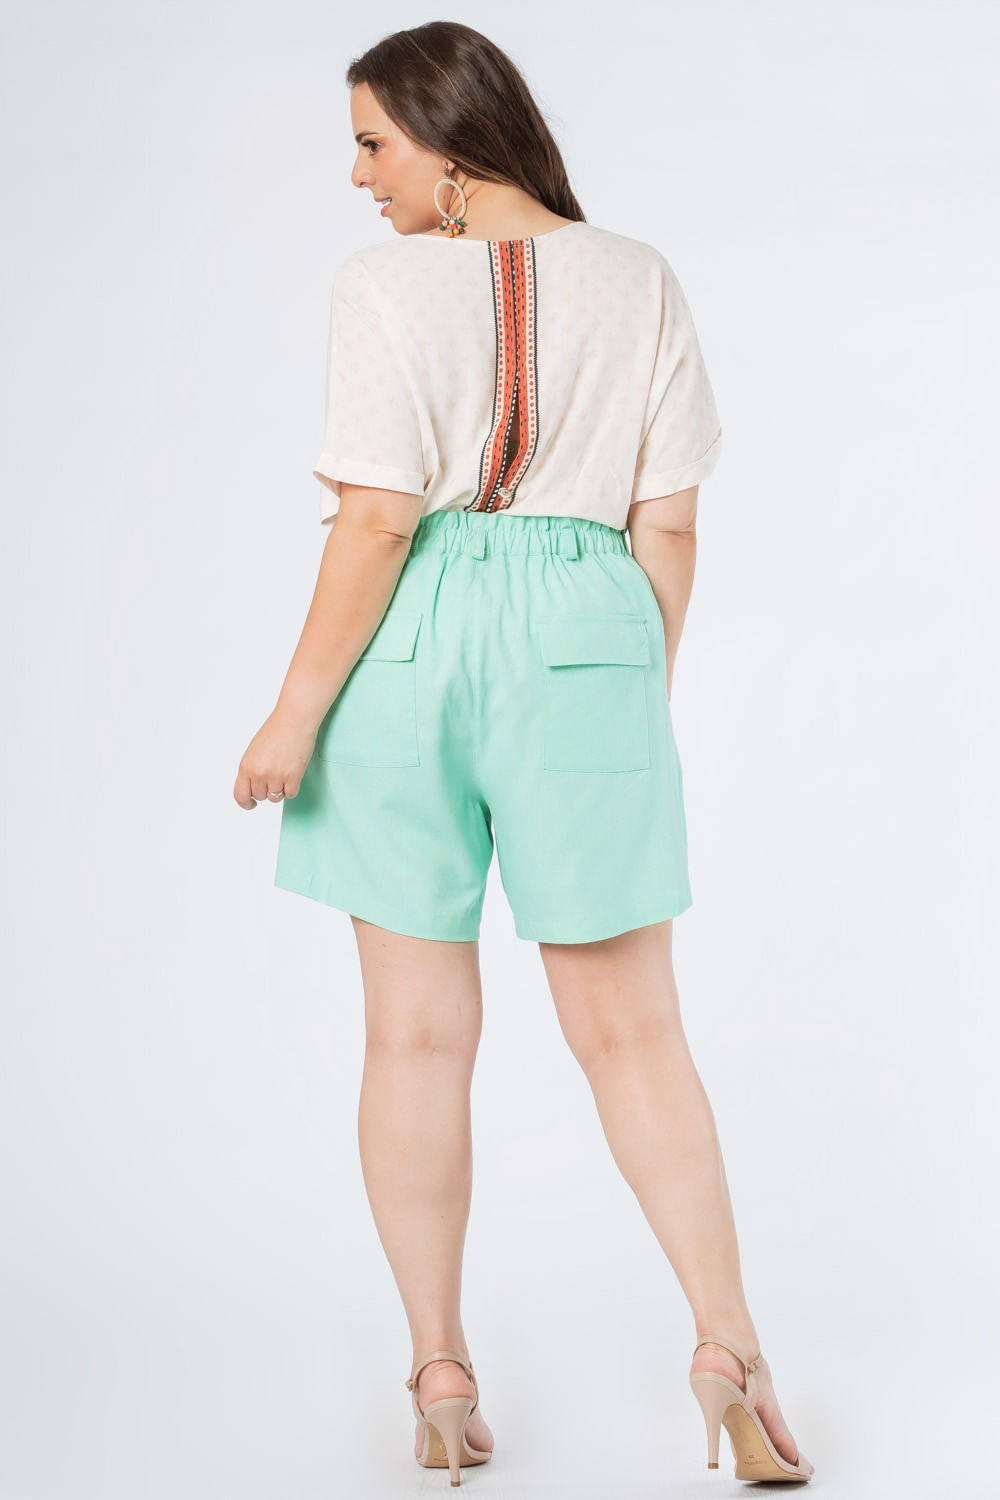 shorts_clochard_linho_plus_size_verde_agua_21914_2_20201203115926